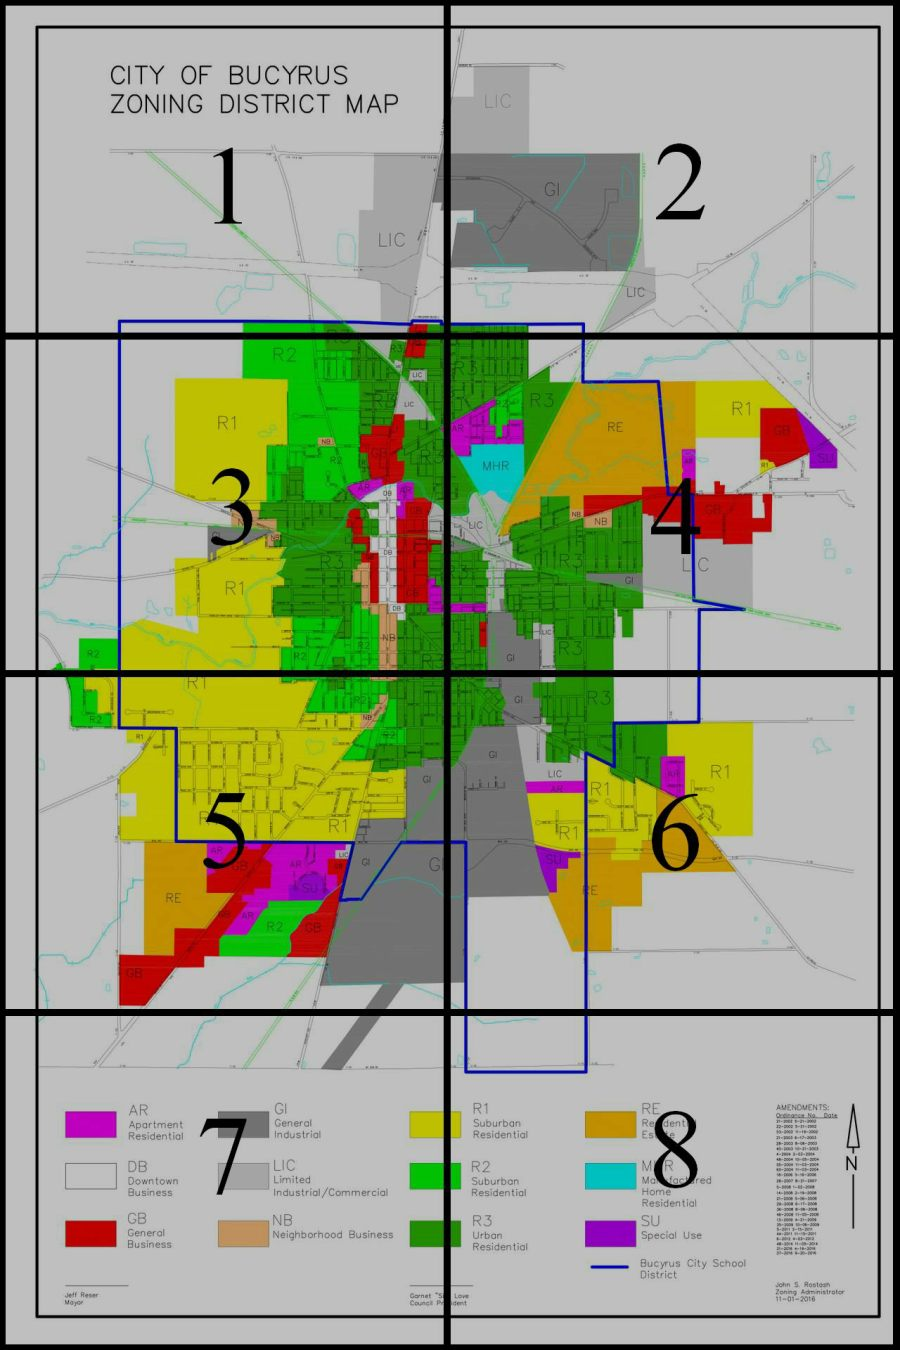 Bucyrus Zoning Map on land use map, zoning board of appeals, survey map, residential map, zoning regulations, future land use map, planning commission, streets map, city council, floodplain map, mashpee ma town map, zoning ordinance, e zone map, climate zone map, business map, wetlands map, parking map, open space map, transportation map, soils map, india earthquake zone map, zoning code,